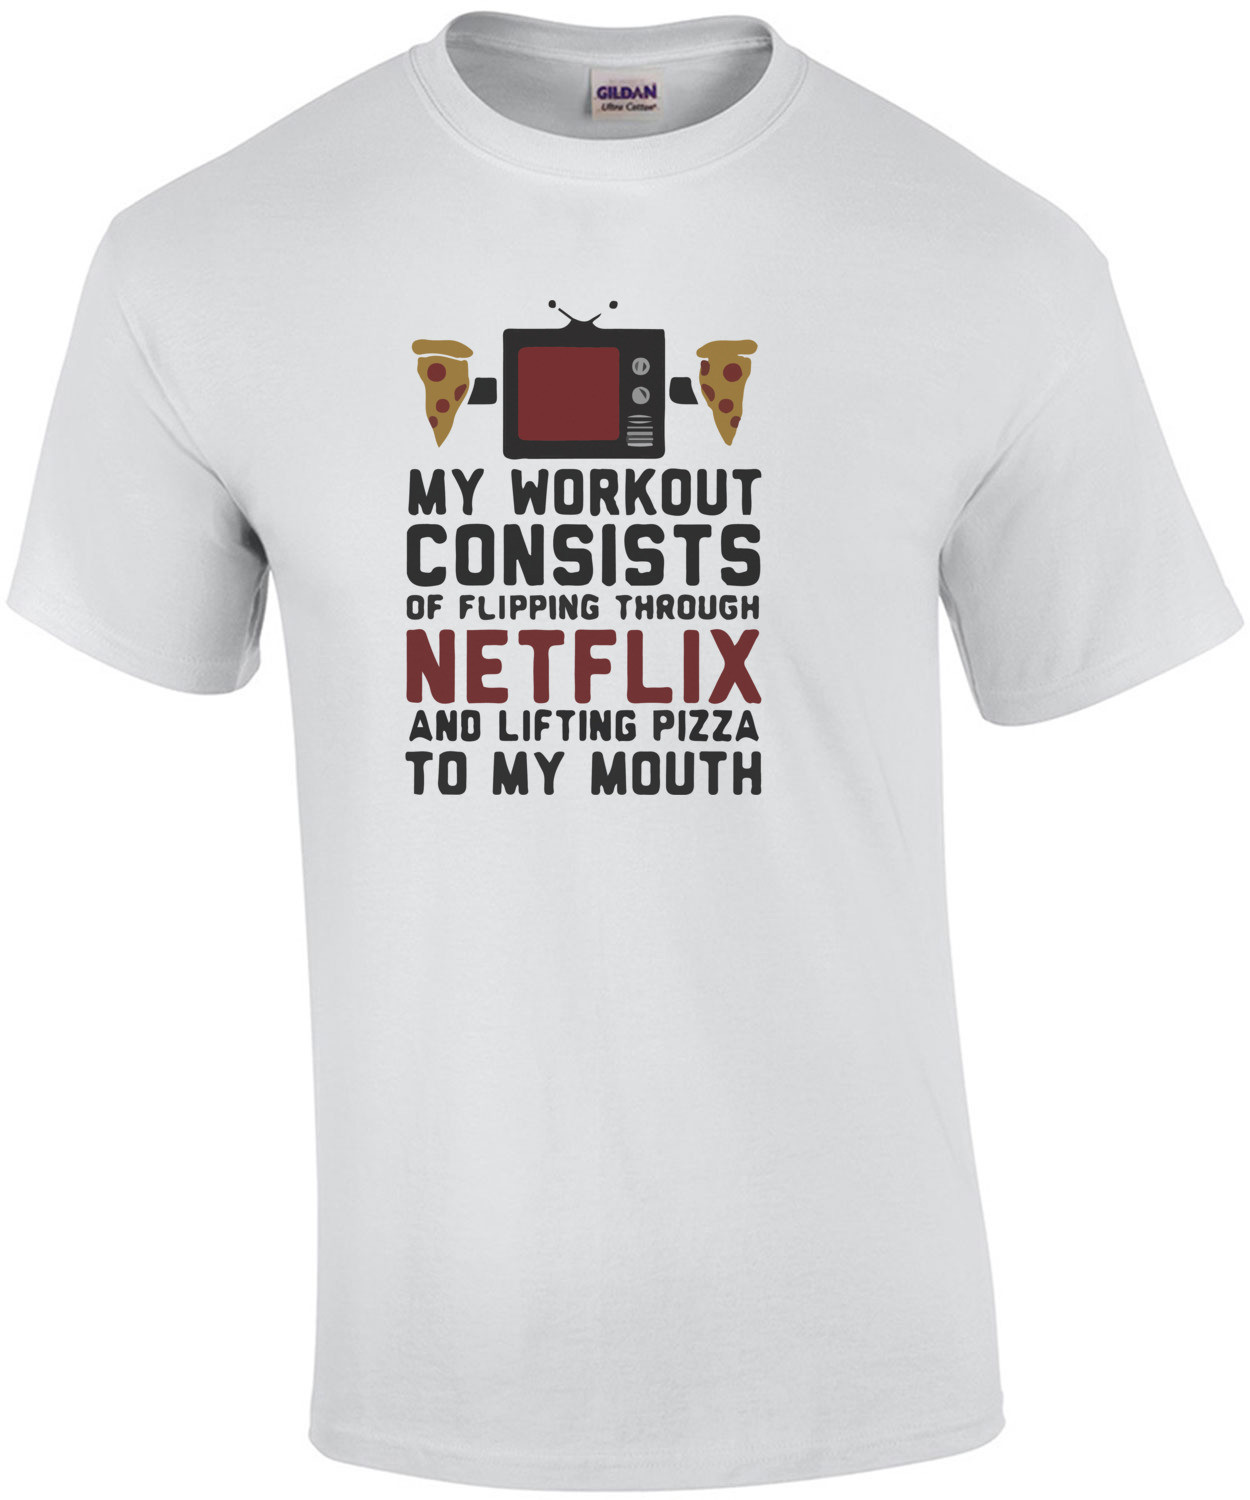 My workout consists of flipping through netflix and lifting pizza to my mouth. Exercise T-Shirt